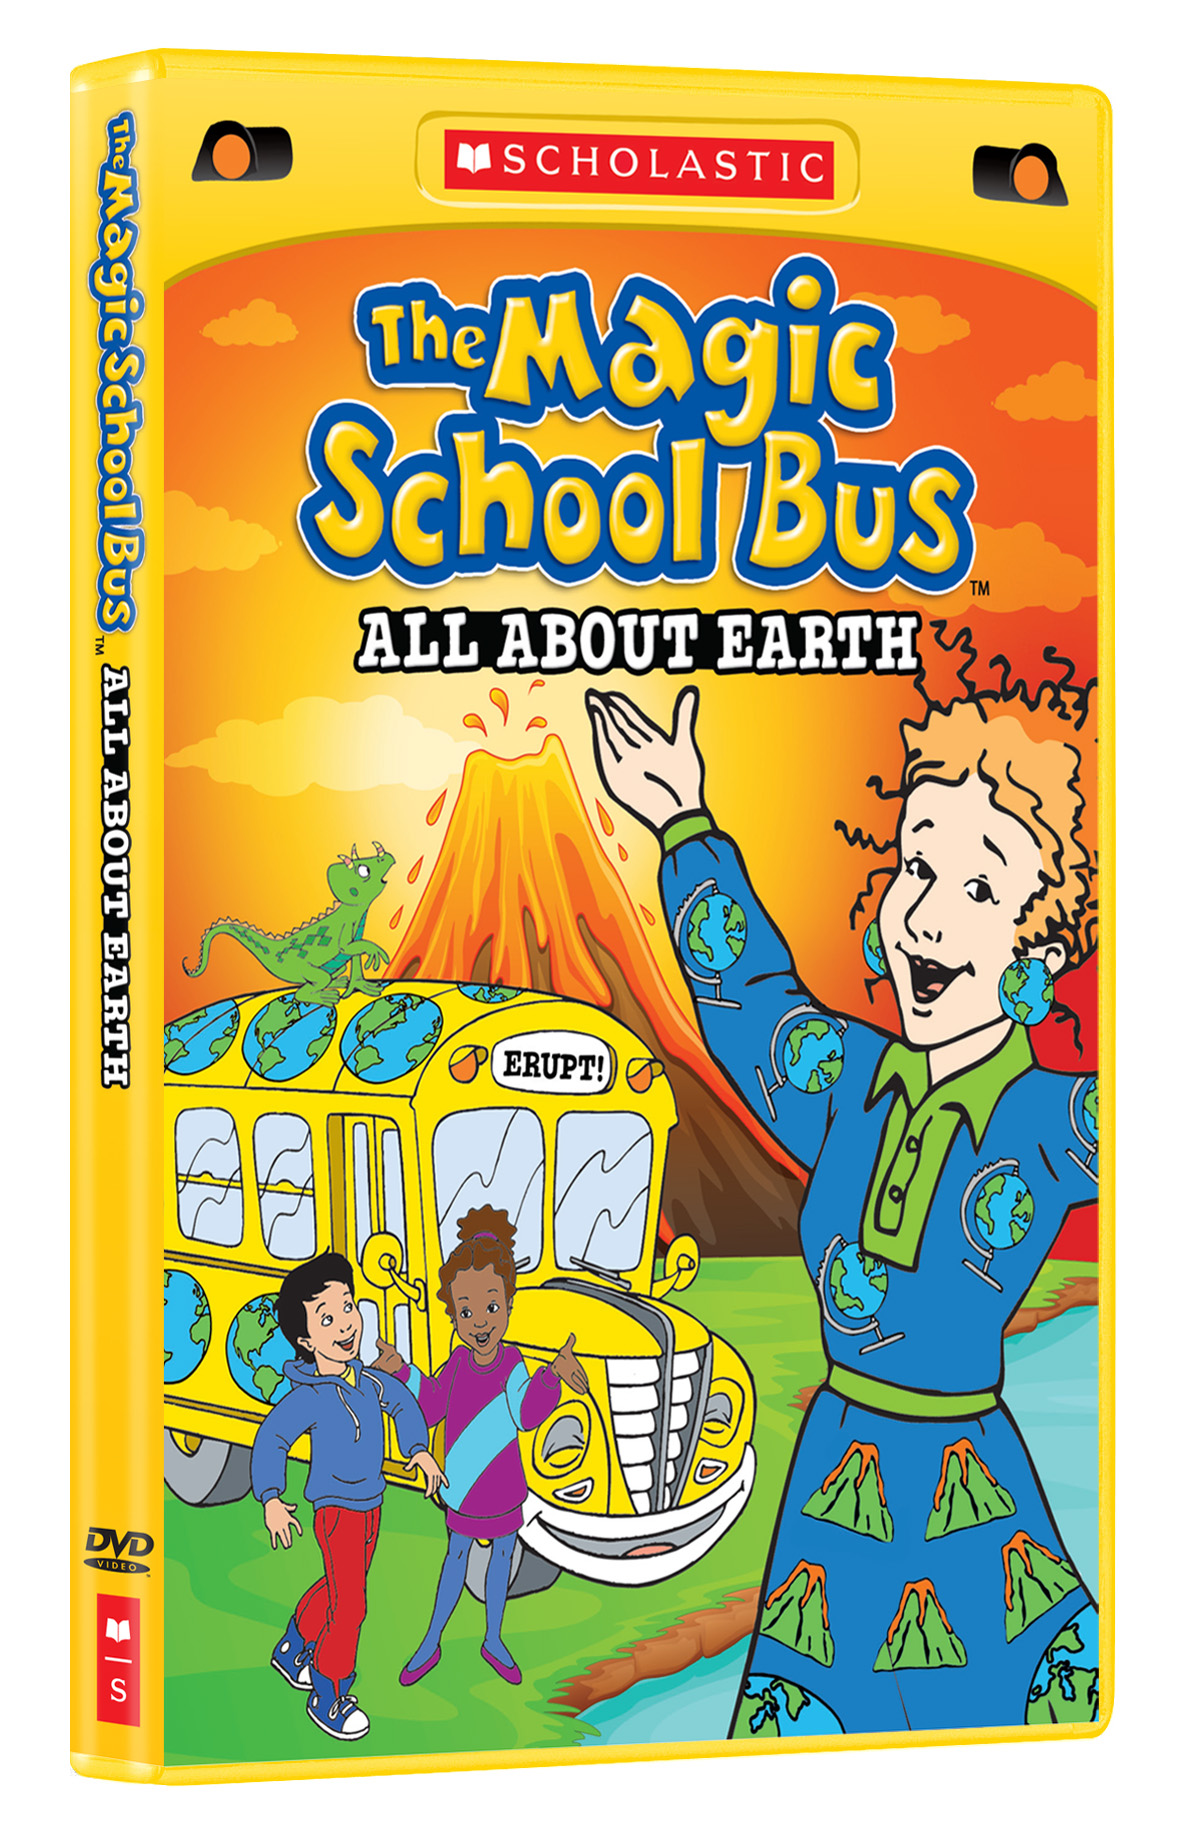 The Magic School Bus All About Earth